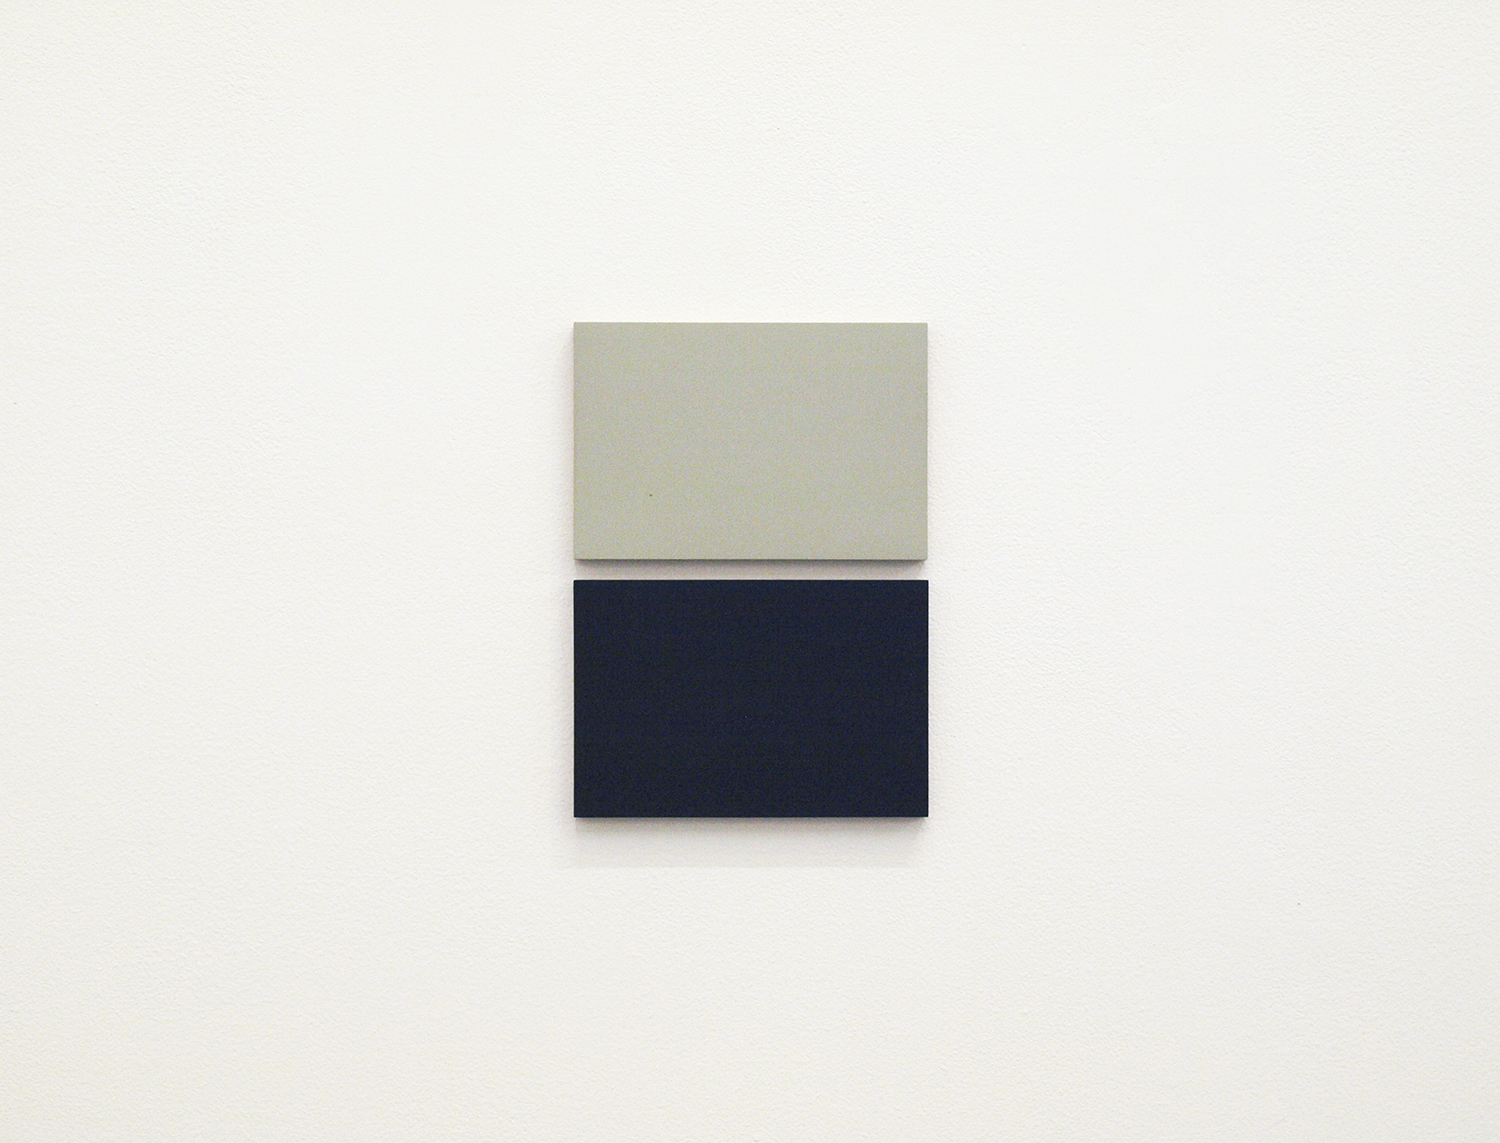 2col-09(gray & dark gray)casein, pigment on canvas & aluminum (2 parts, 10 x 15 cm each)